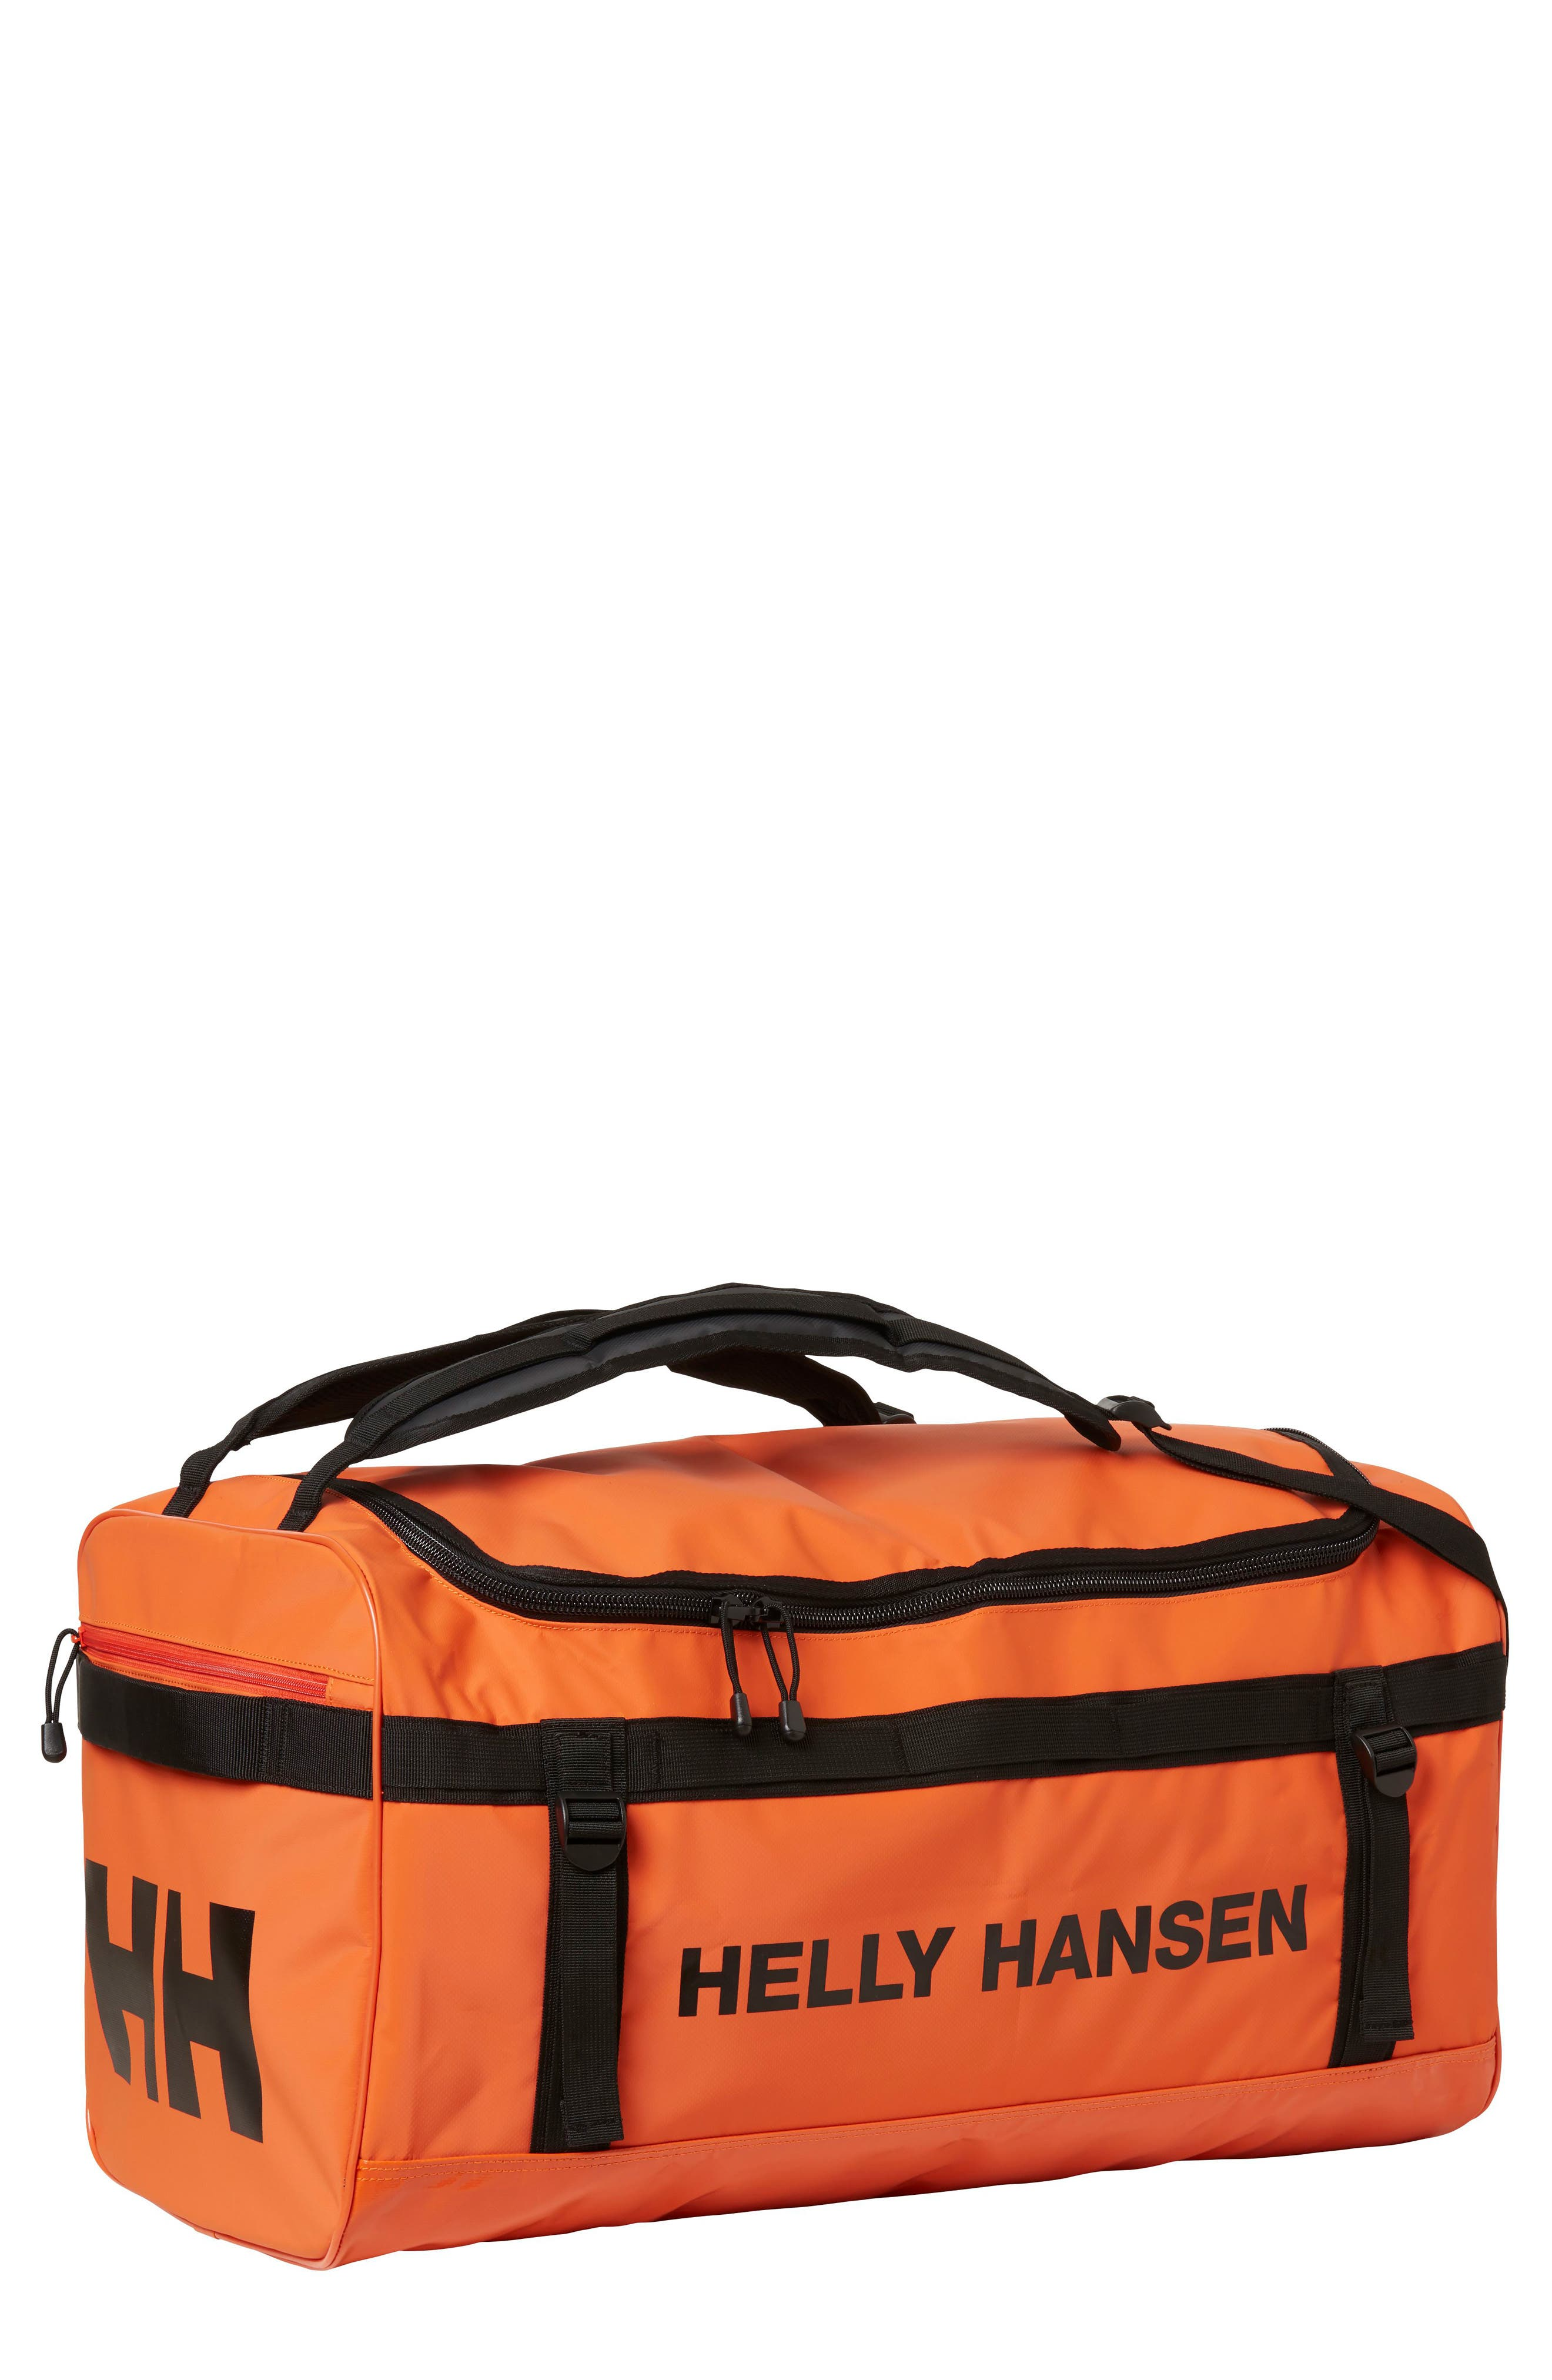 Helly Hansen New Classic Large Duffel Bag